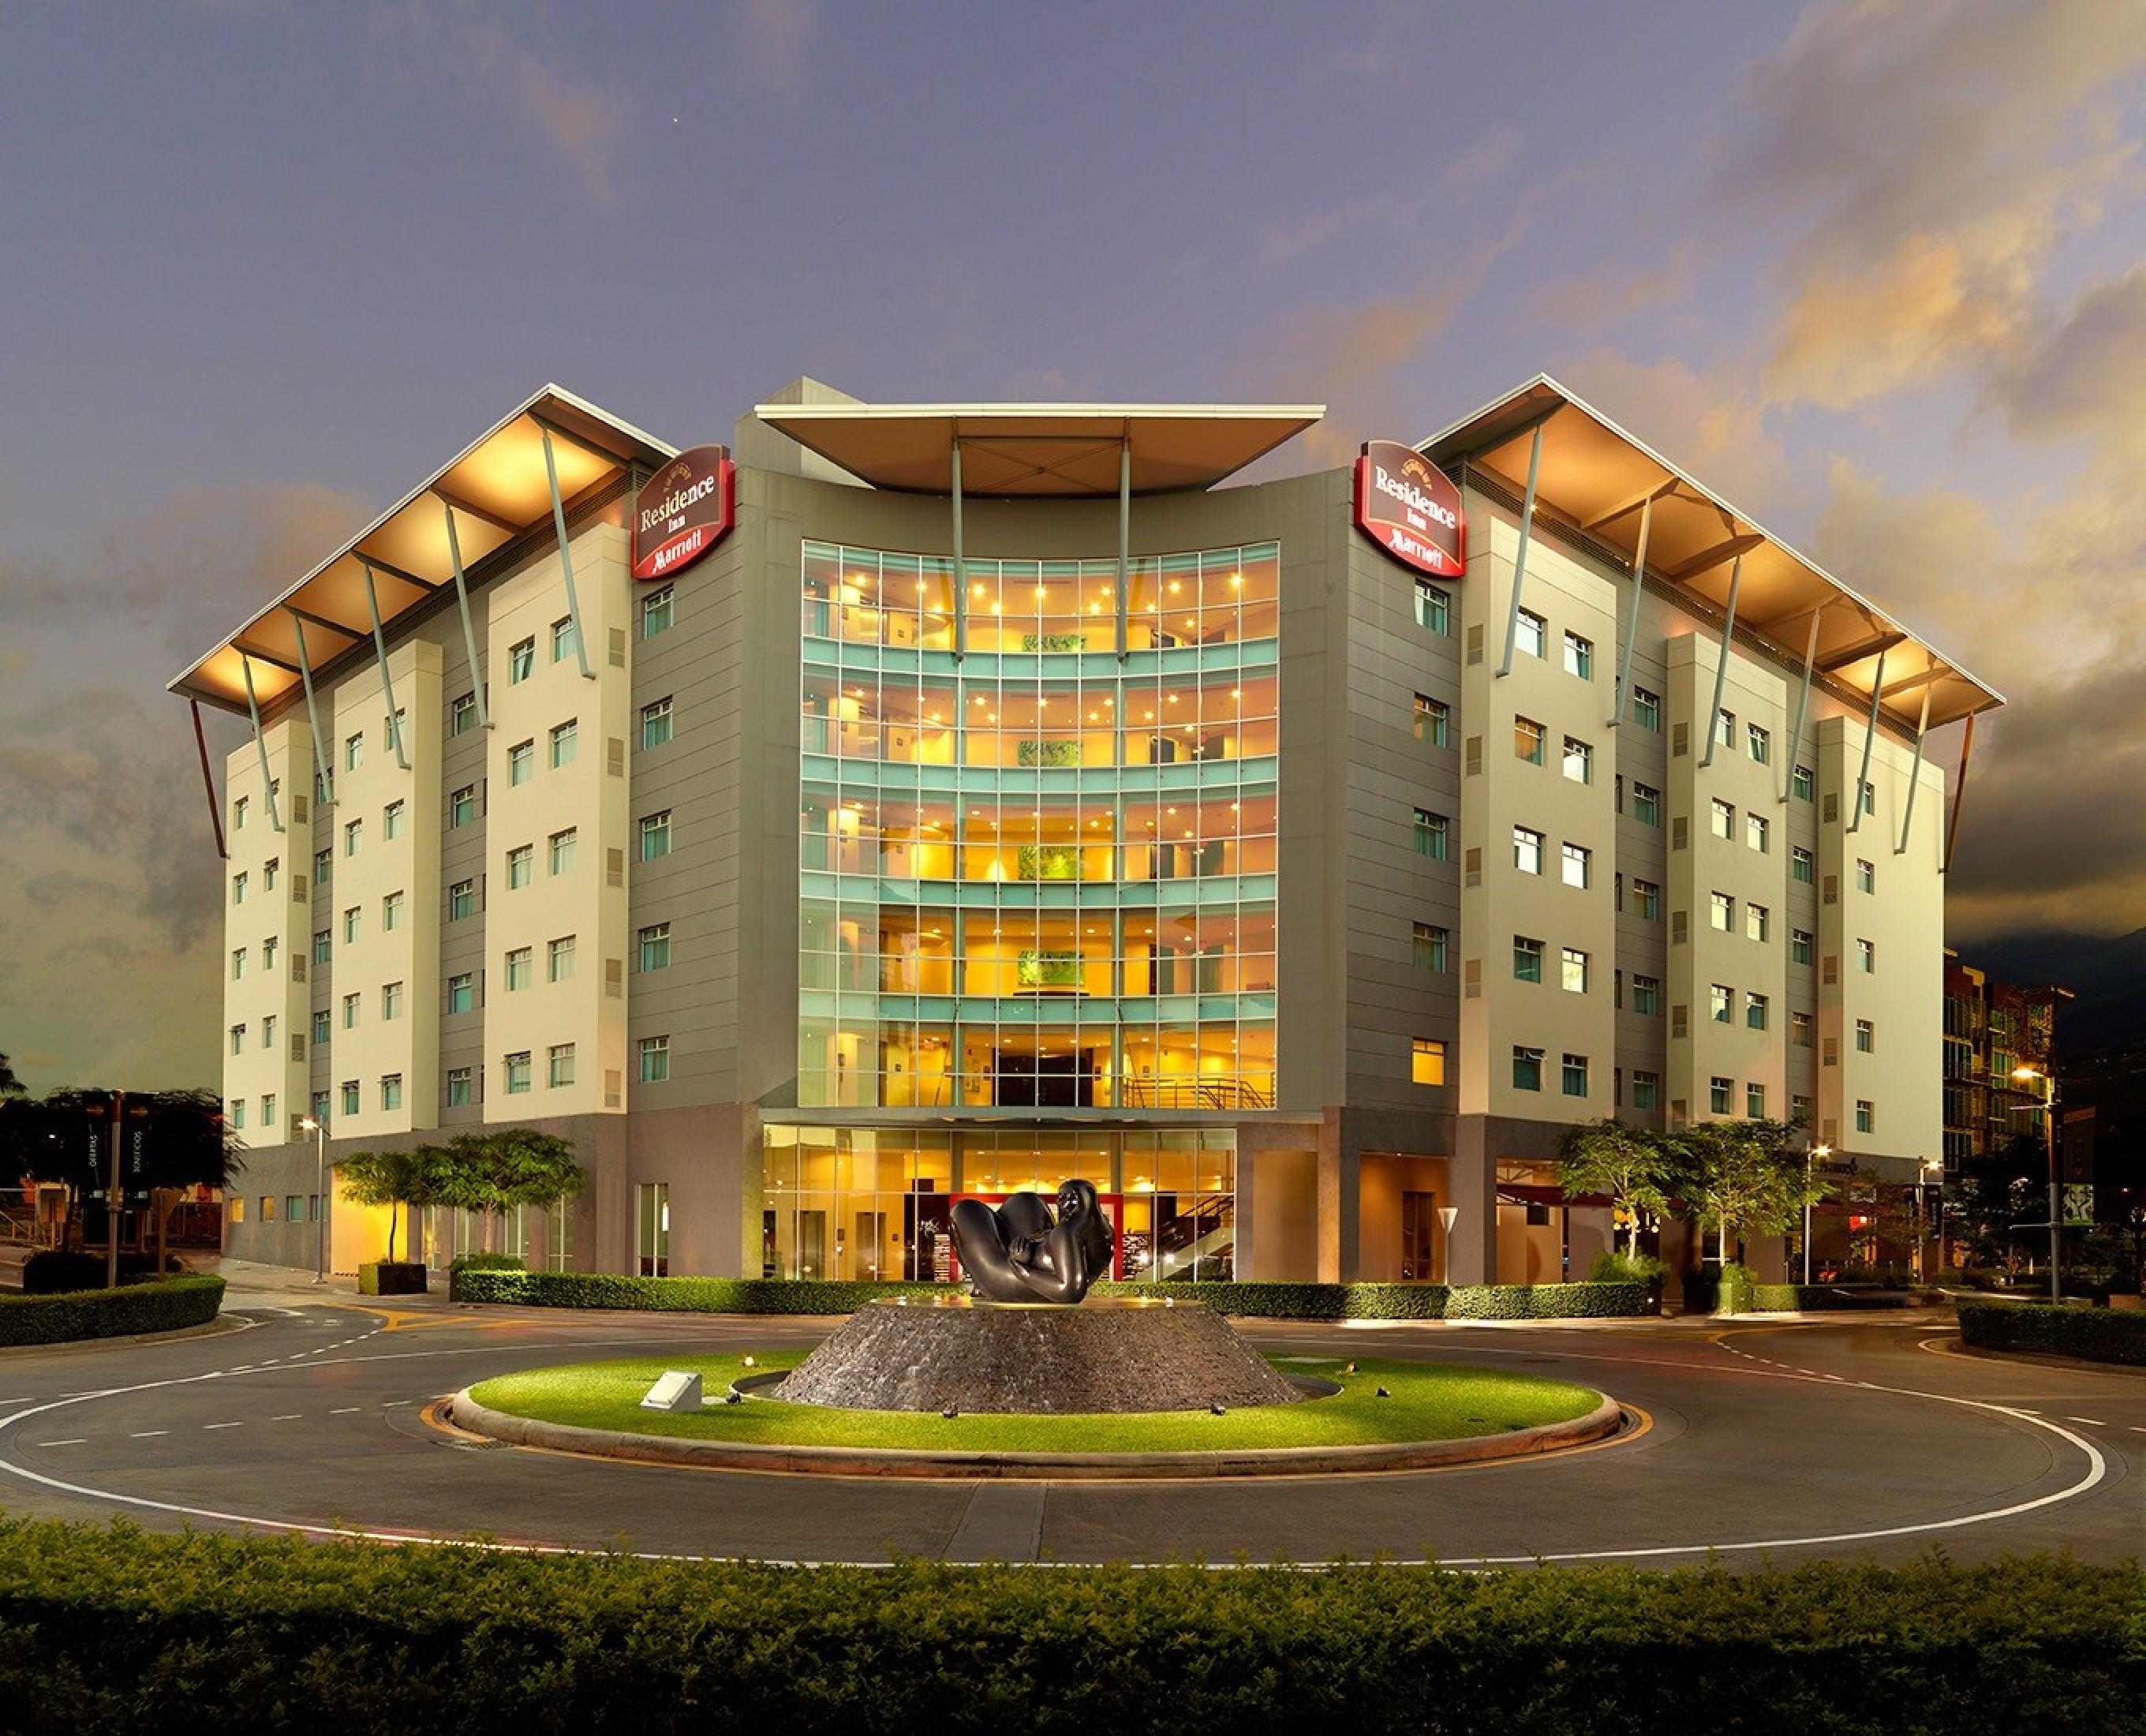 Marriott Residence Inn Escazu